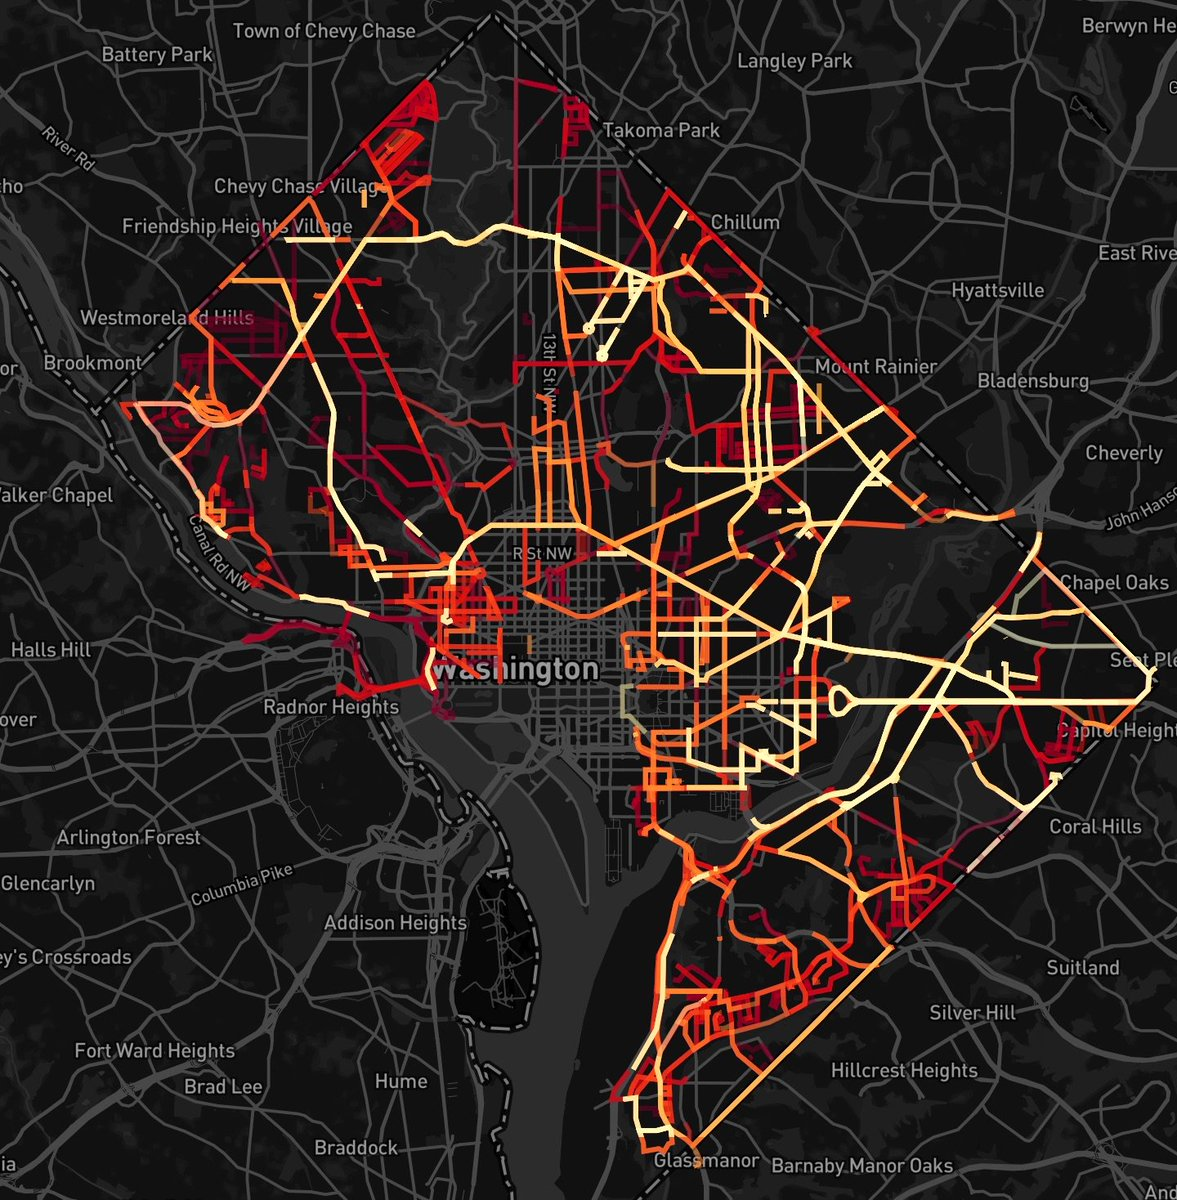 DC snowplow map -- last 24 hrs, auto-updating. brighter = more recent https://t.co/7Jc96xBuuy https://t.co/98vWGjfnZX